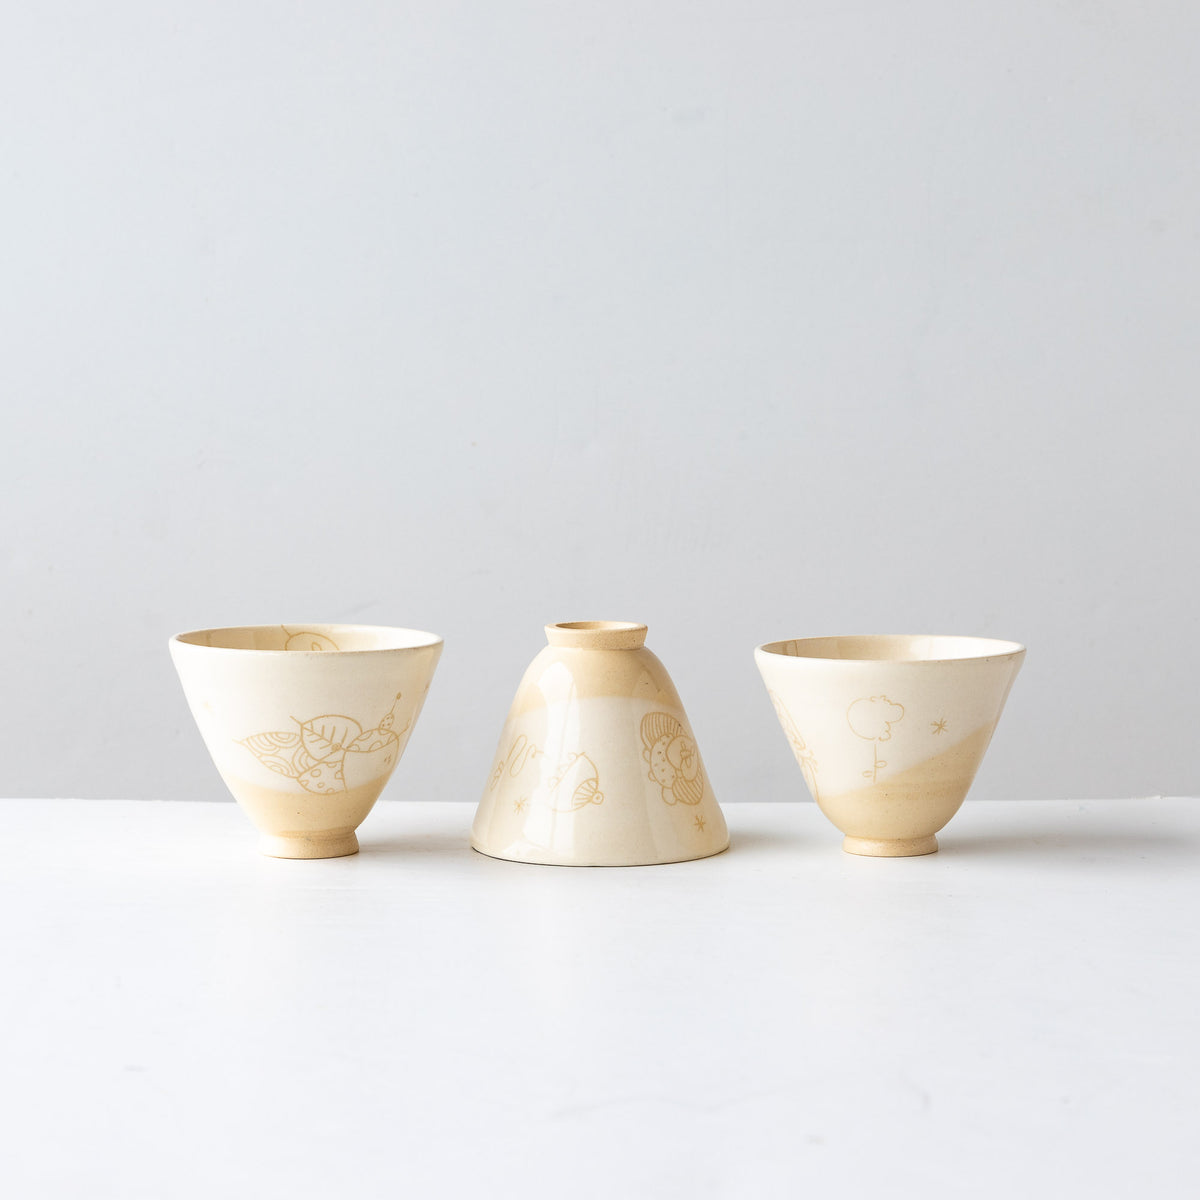 Three Creamy White Lil' Hand Painted Earthenware Bowls - Sold by Chic & Basta